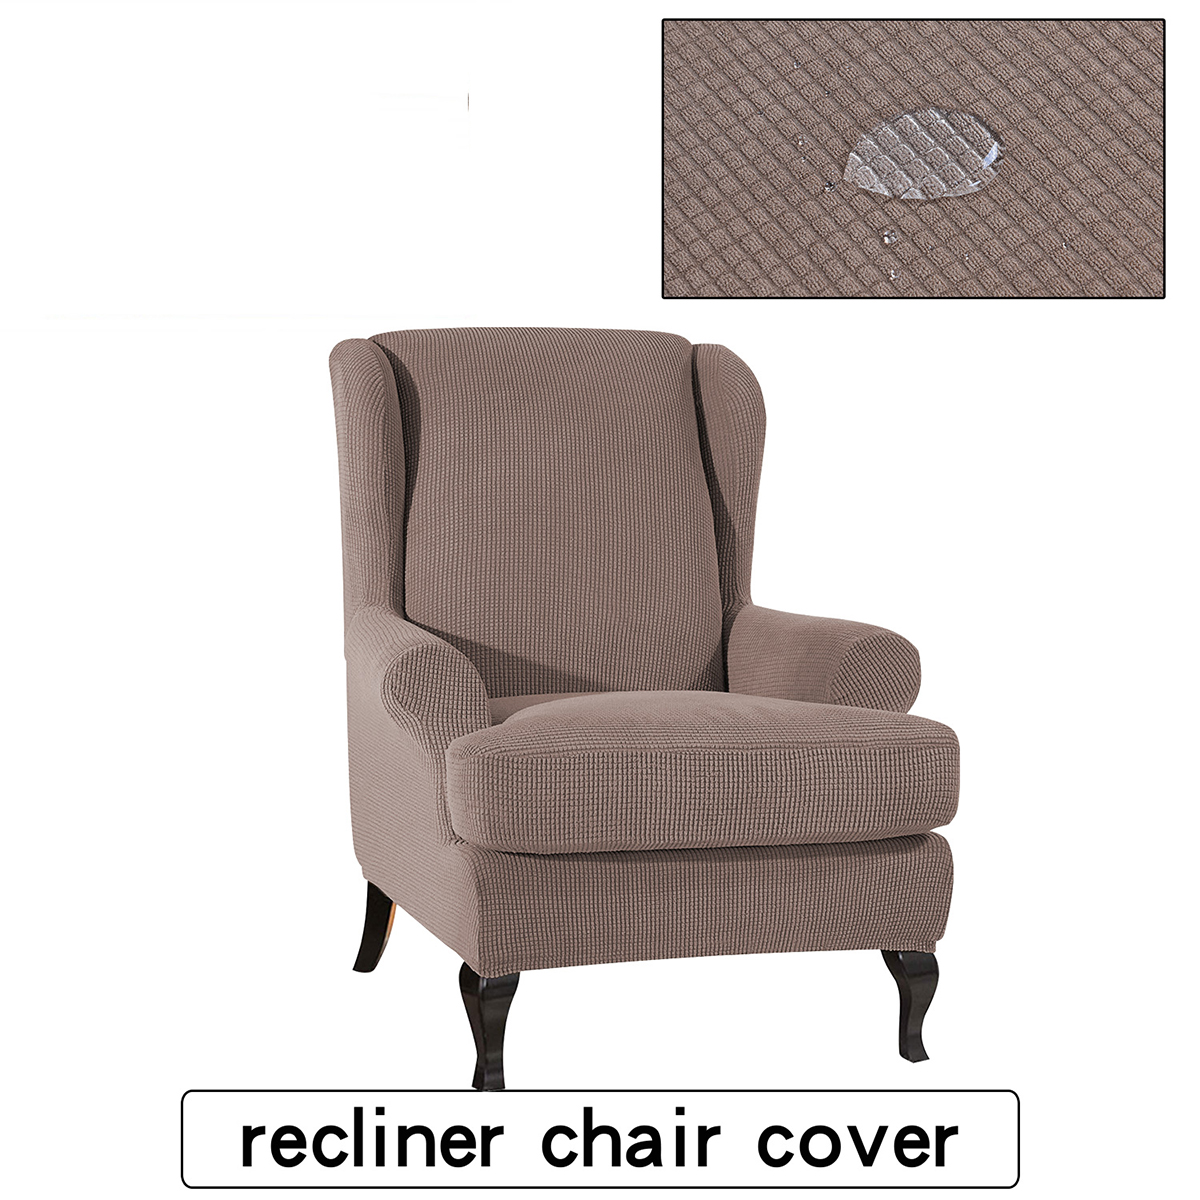 Details About Fabric Elastic Armchair Wingback Wing Chair Slipcovers Home Furniture Protector